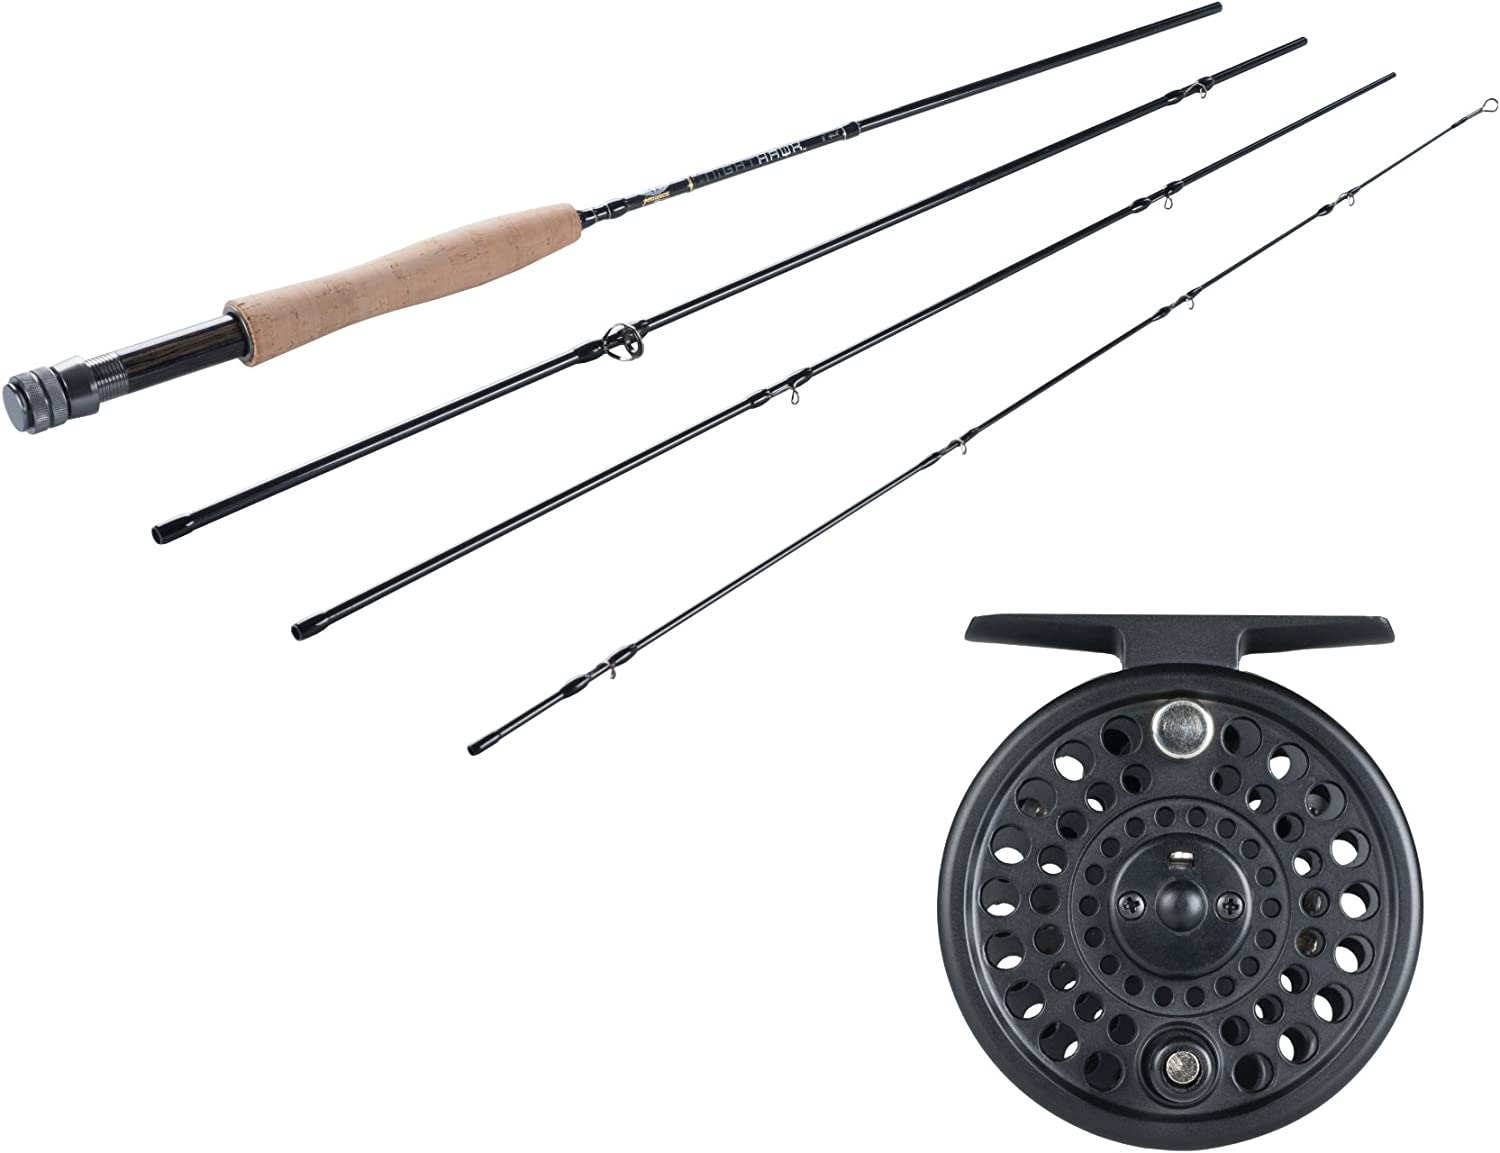 Fenwick Pflueger Monarch Complete Fly Fishing Outfit 9 Ft 5 Wt 4-pc